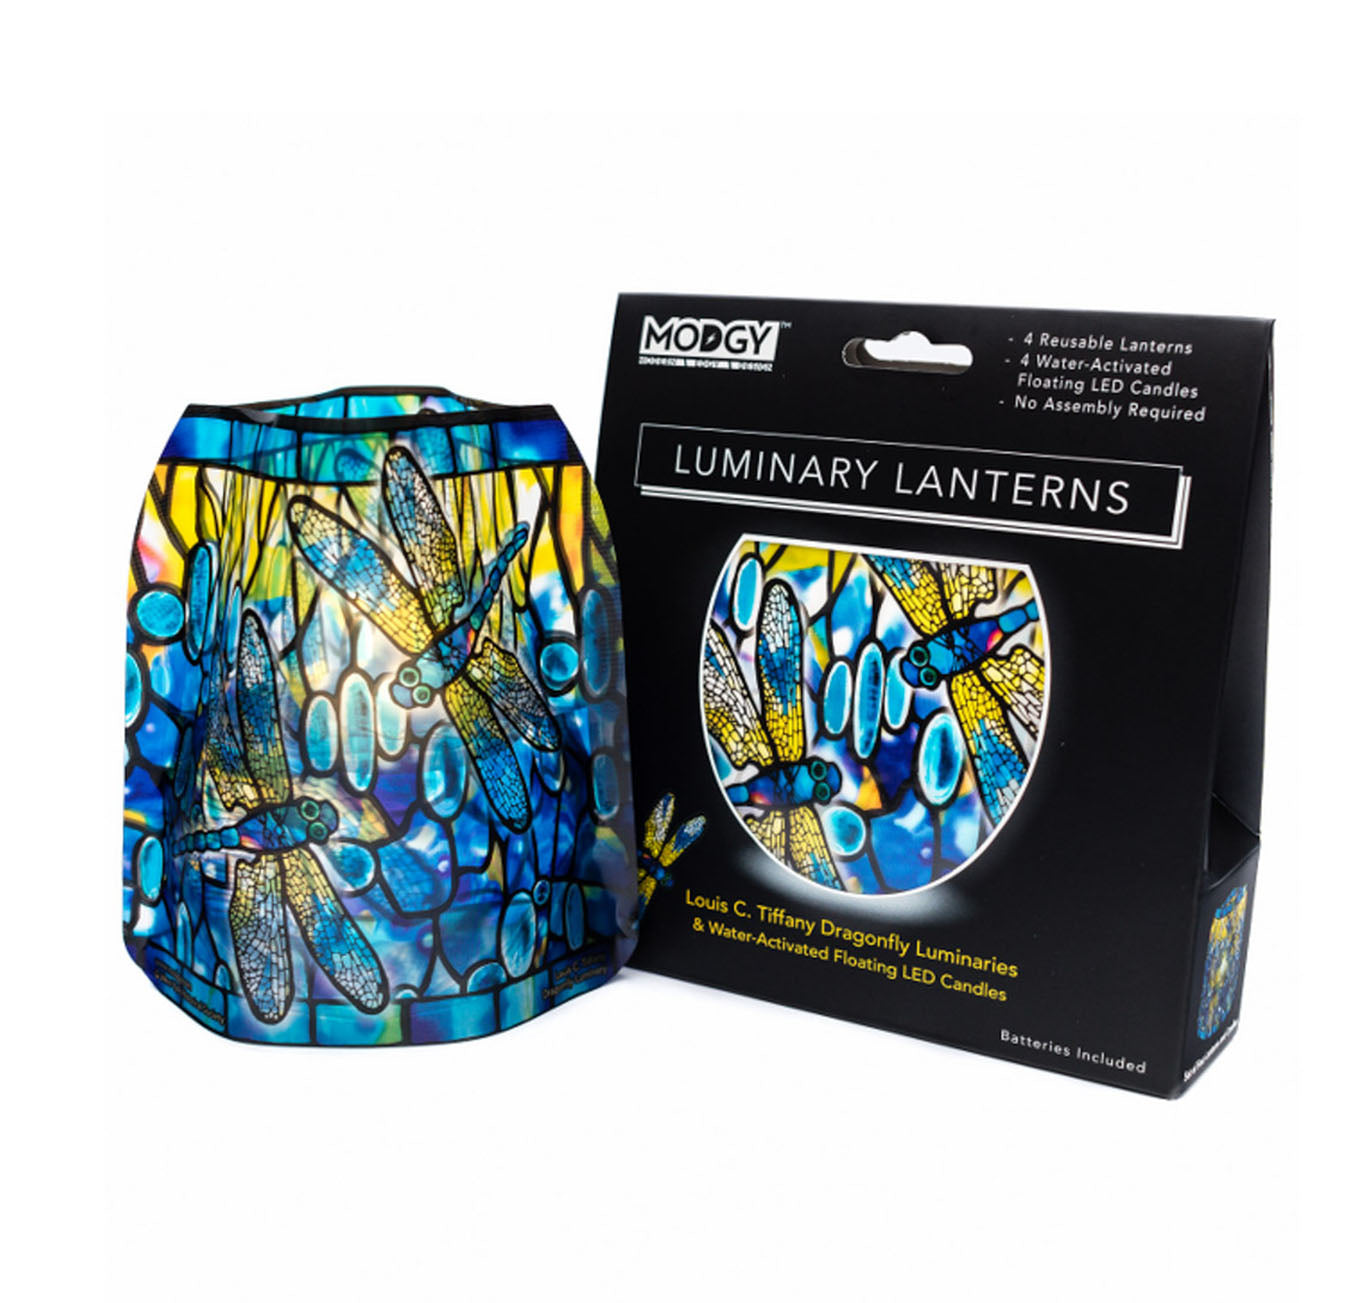 Louis C. Tiffany Dragonfly Luminaries